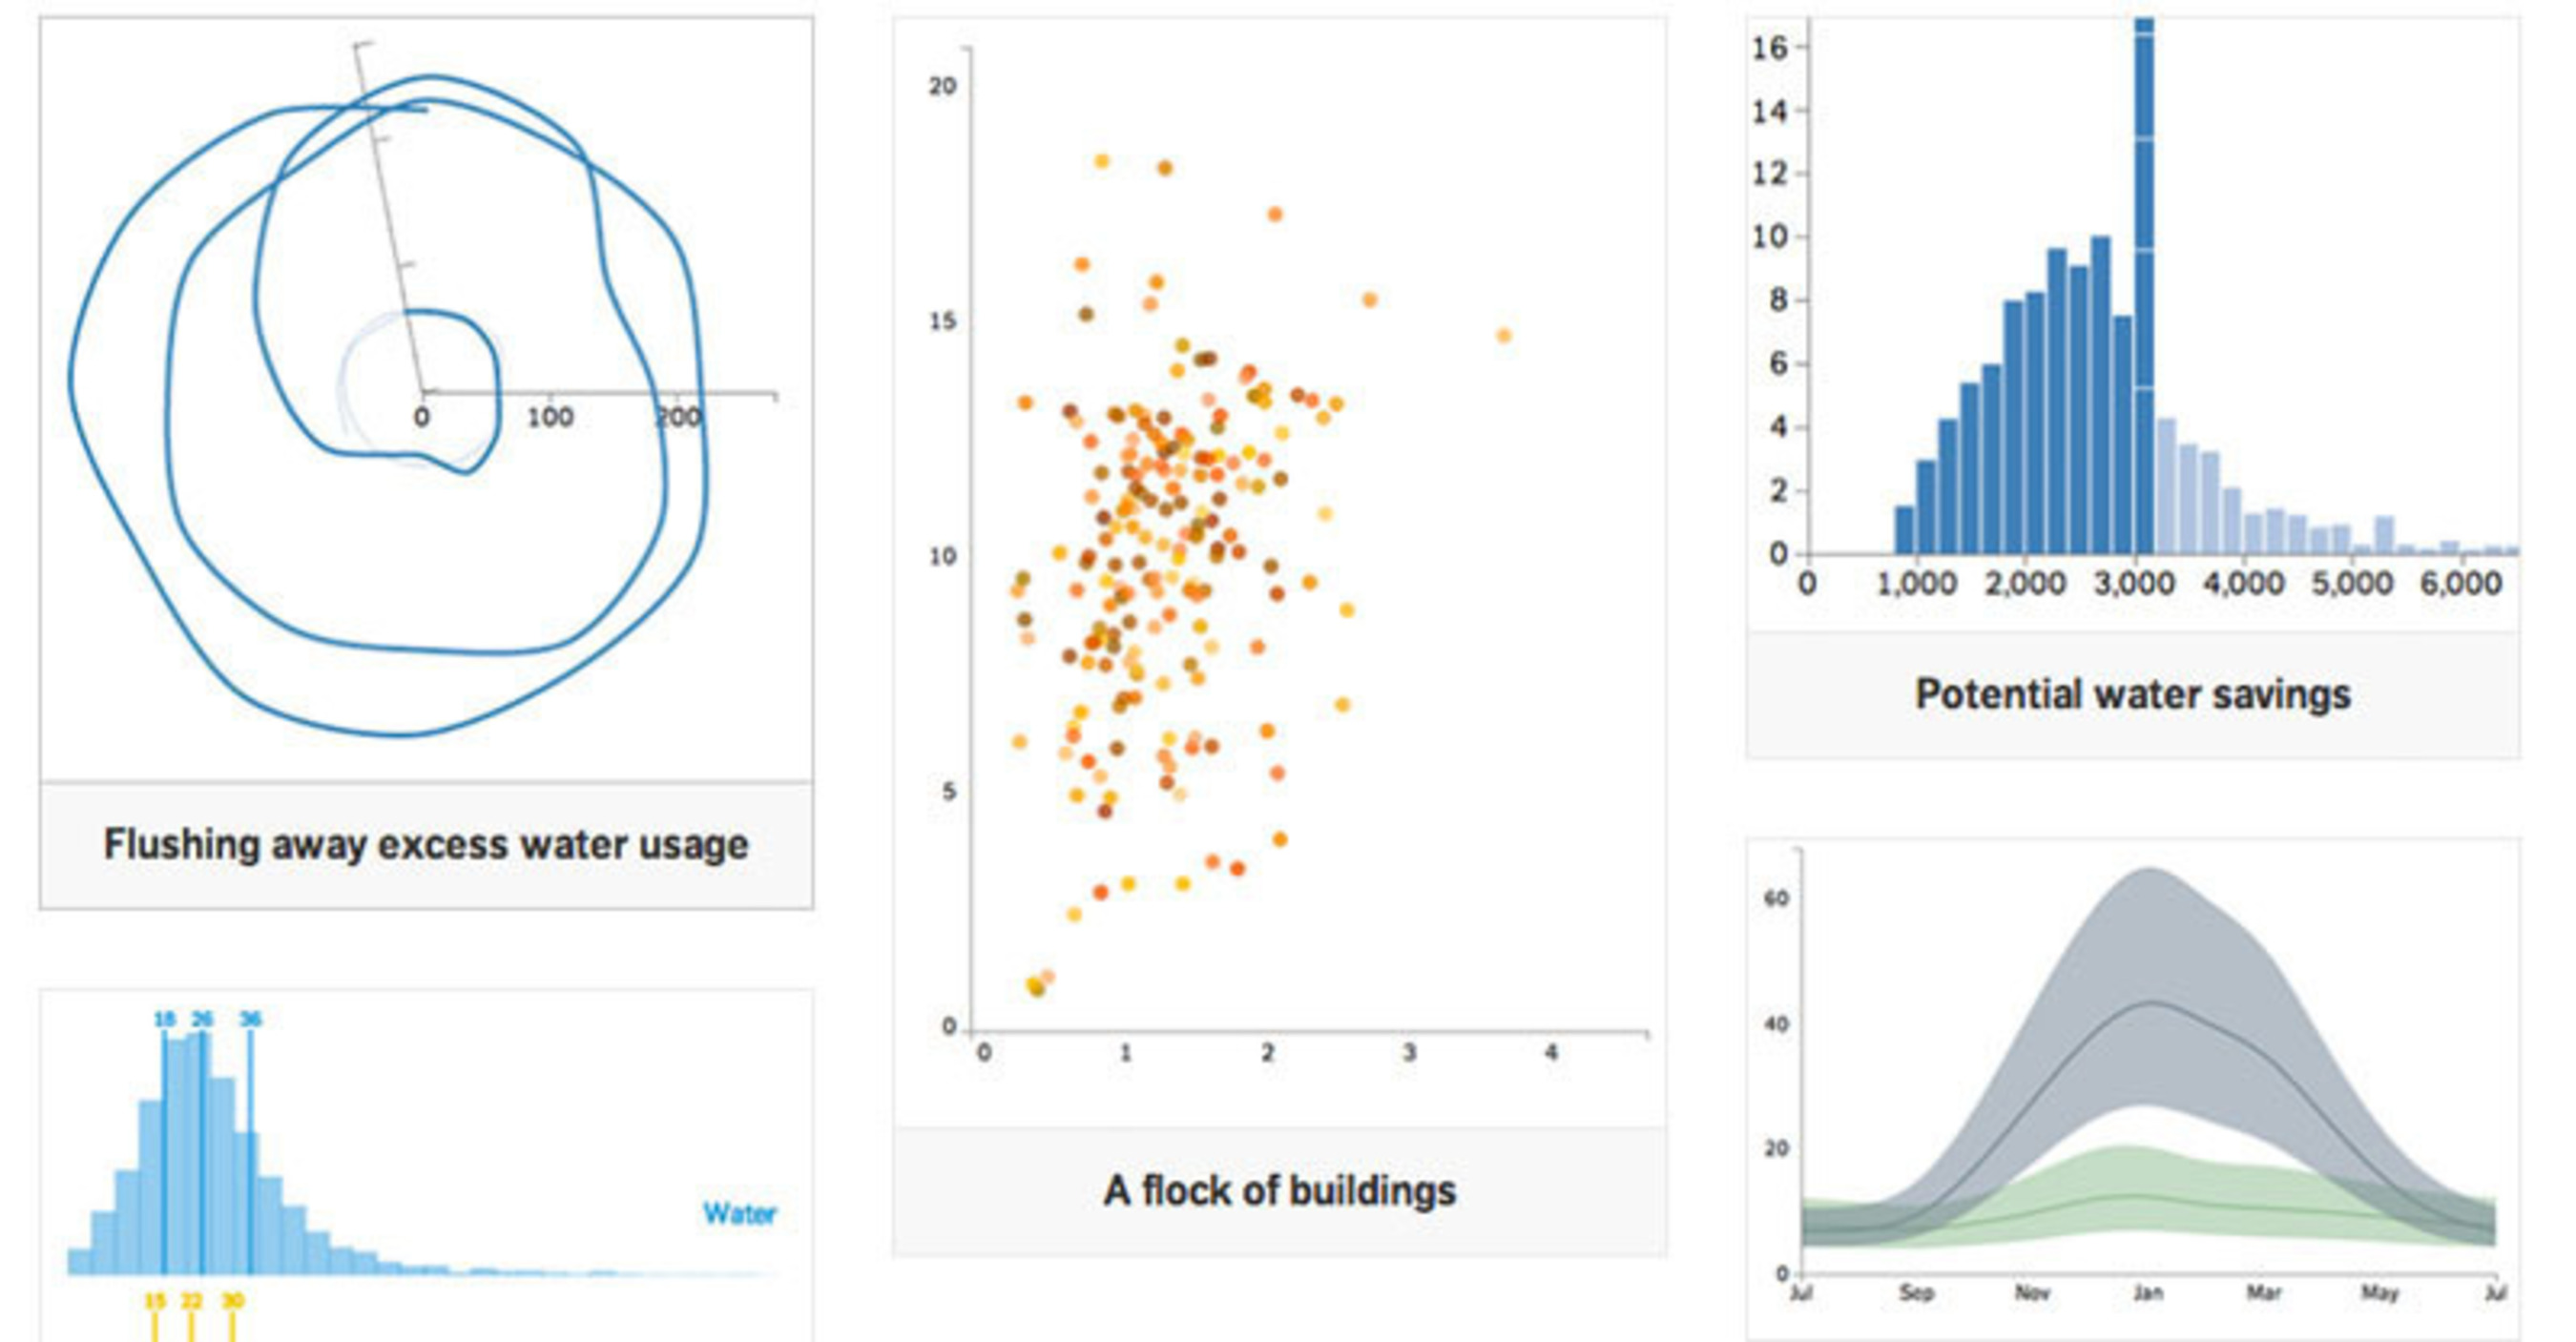 WegoWise, a utility intelligence provider, today launched data.wegowise.com to reveal insights into multifamily building utility trends through interactive graphics. The first-of-its-kind website provides analysis of energy and water use over time, with data drawn from the largest database of multifamily utility data in the world.  (PRNewsFoto/WegoWise)